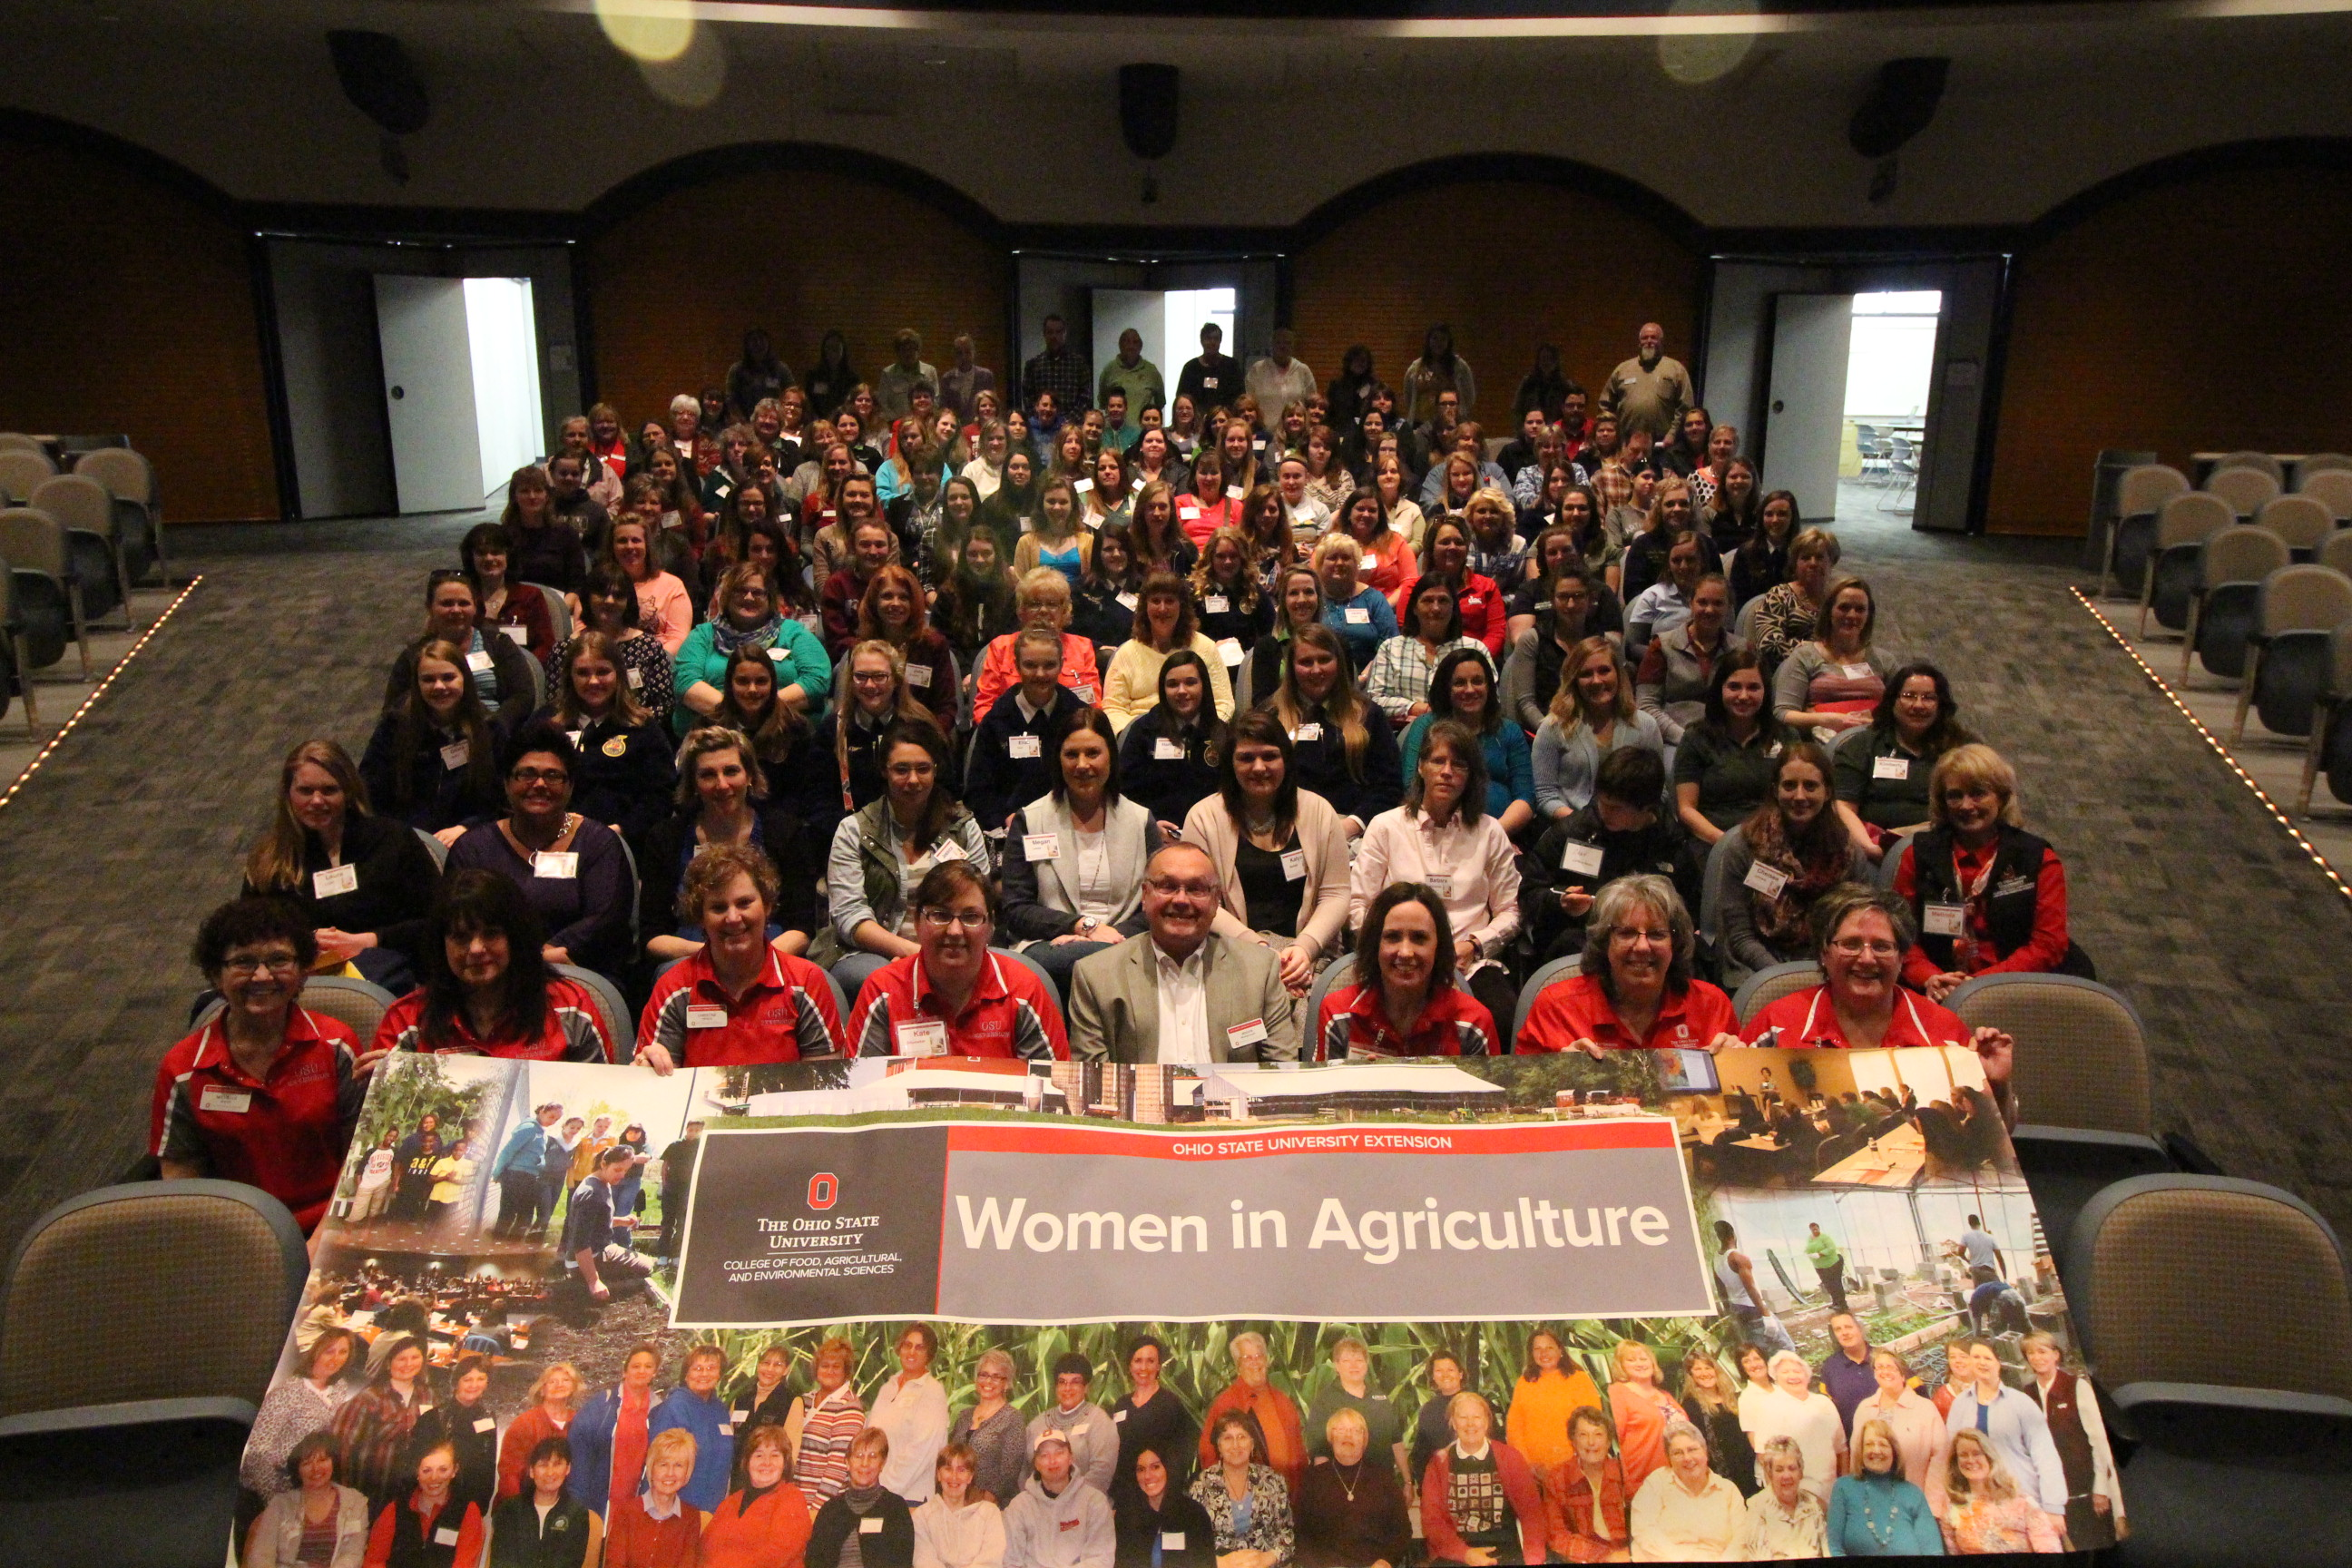 registration open for 2017 east ohio women in agriculture